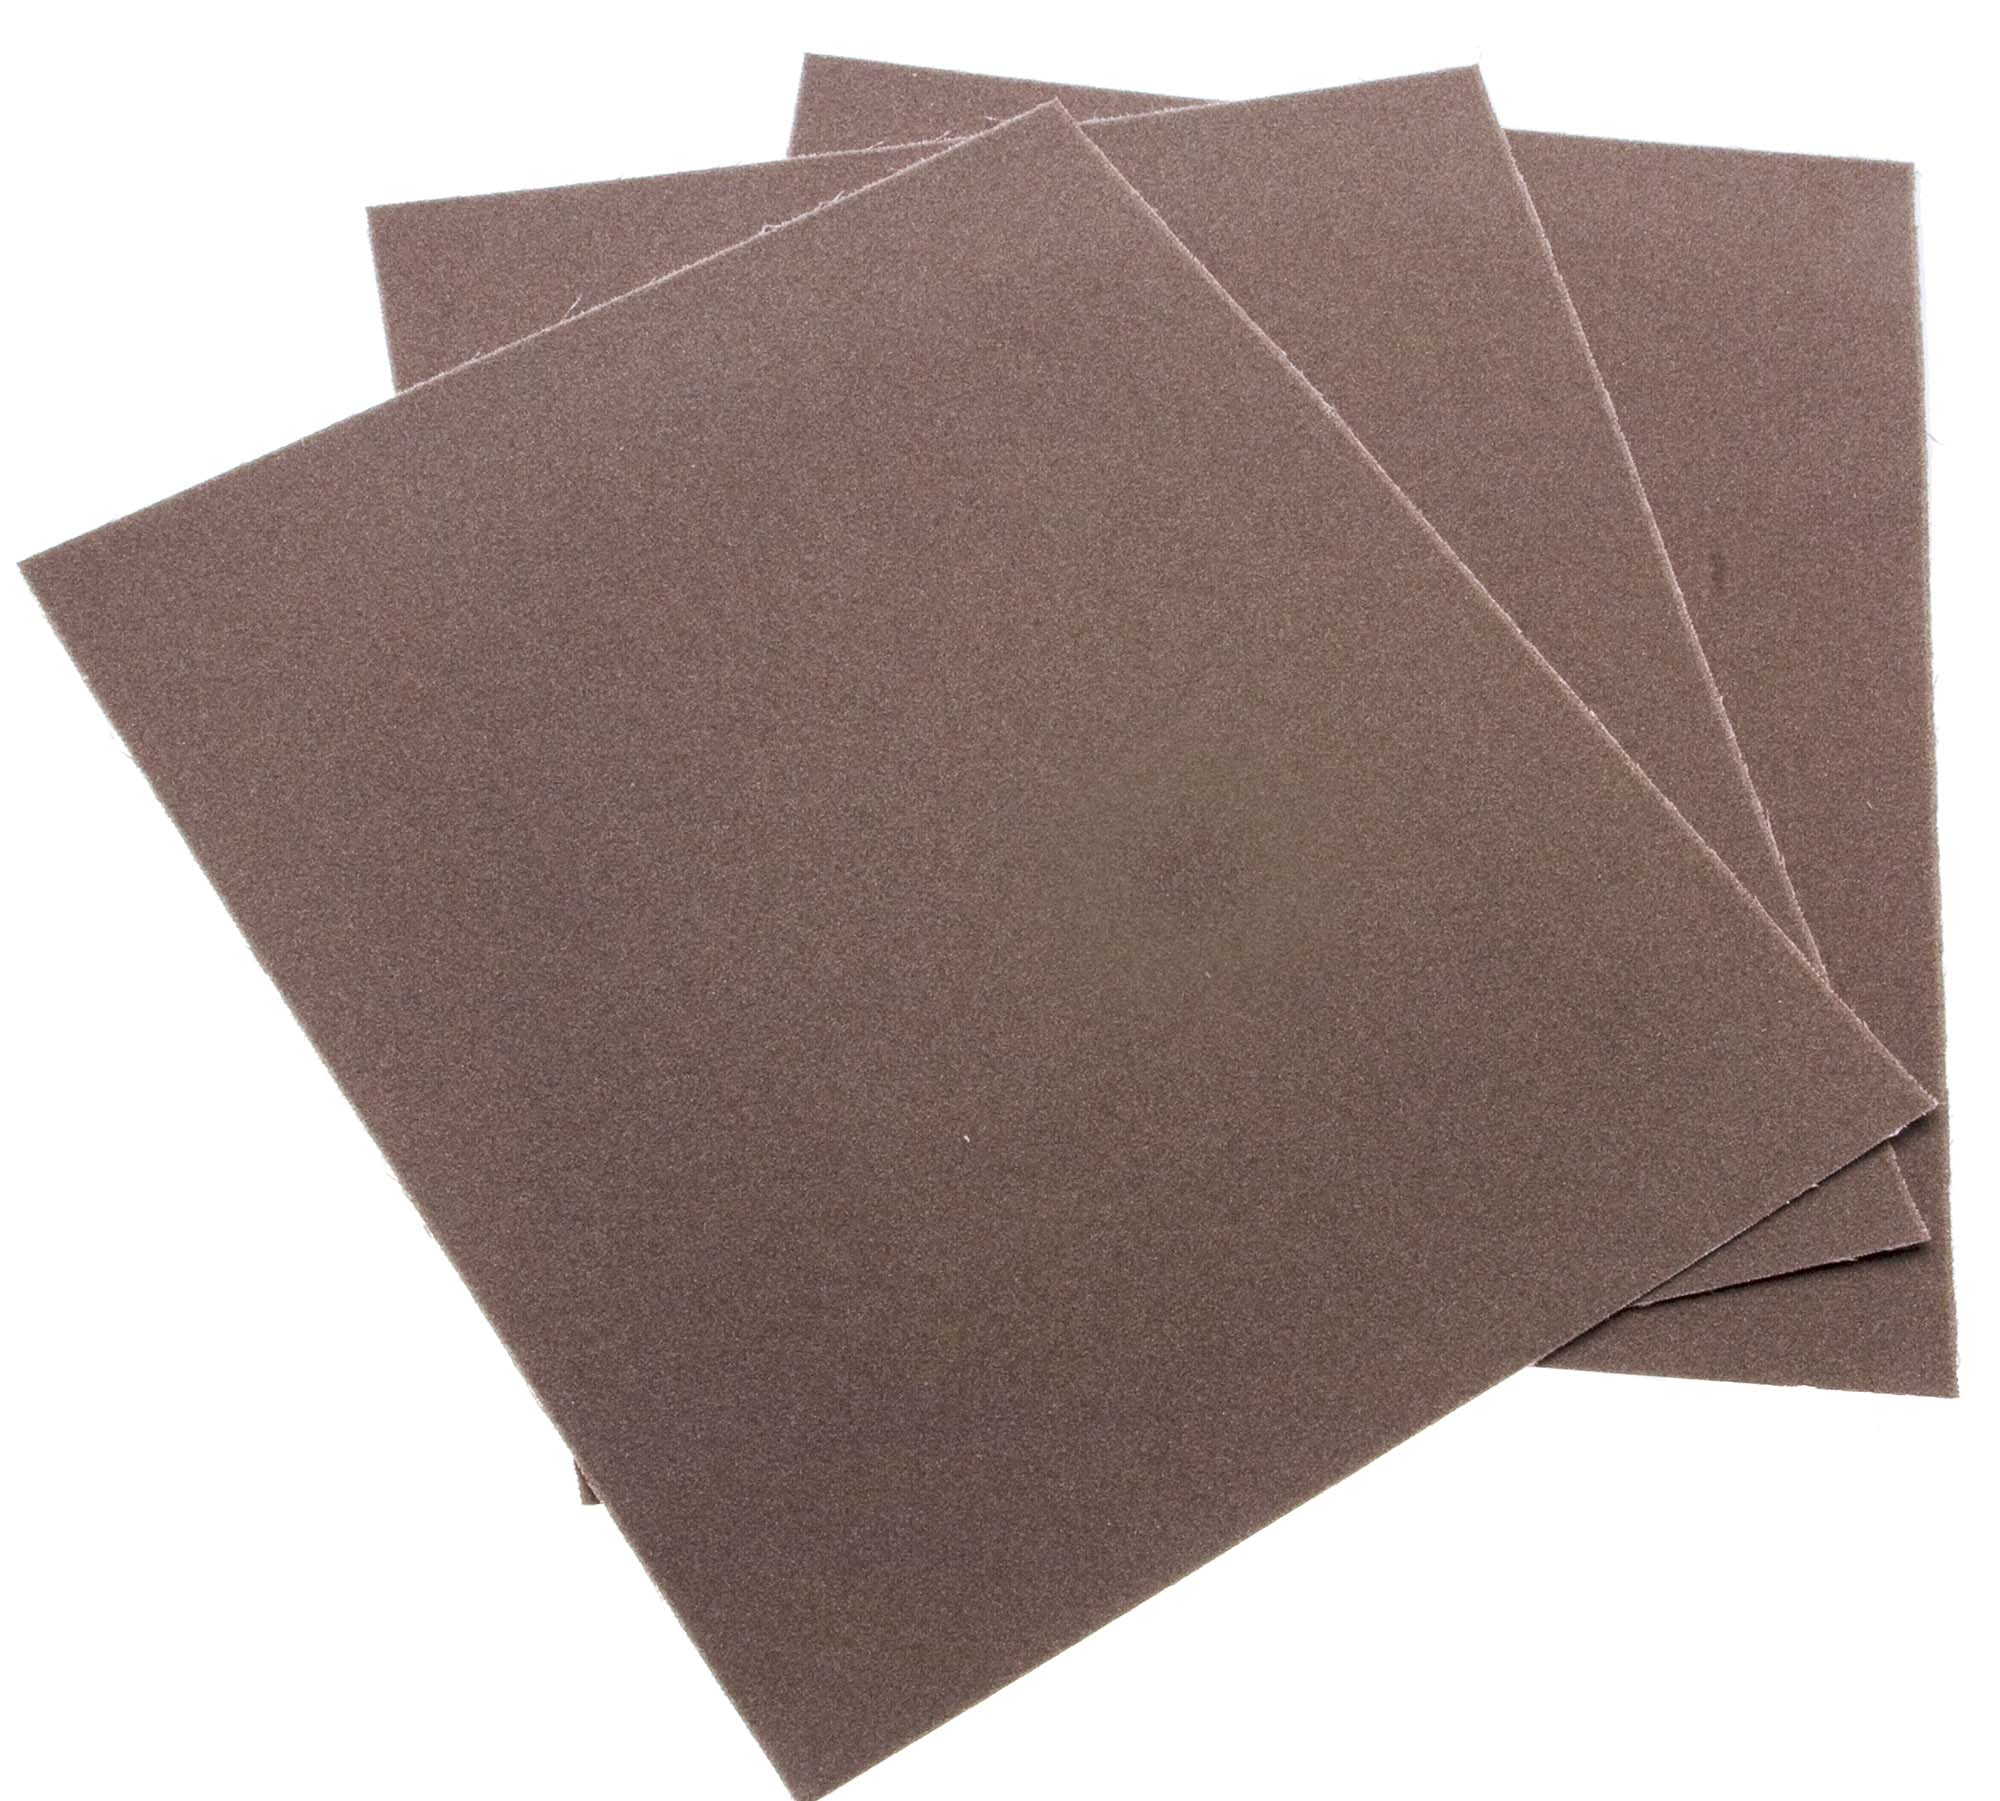 180 Grit 9 x 11 Import Aloxite Sheets (50)